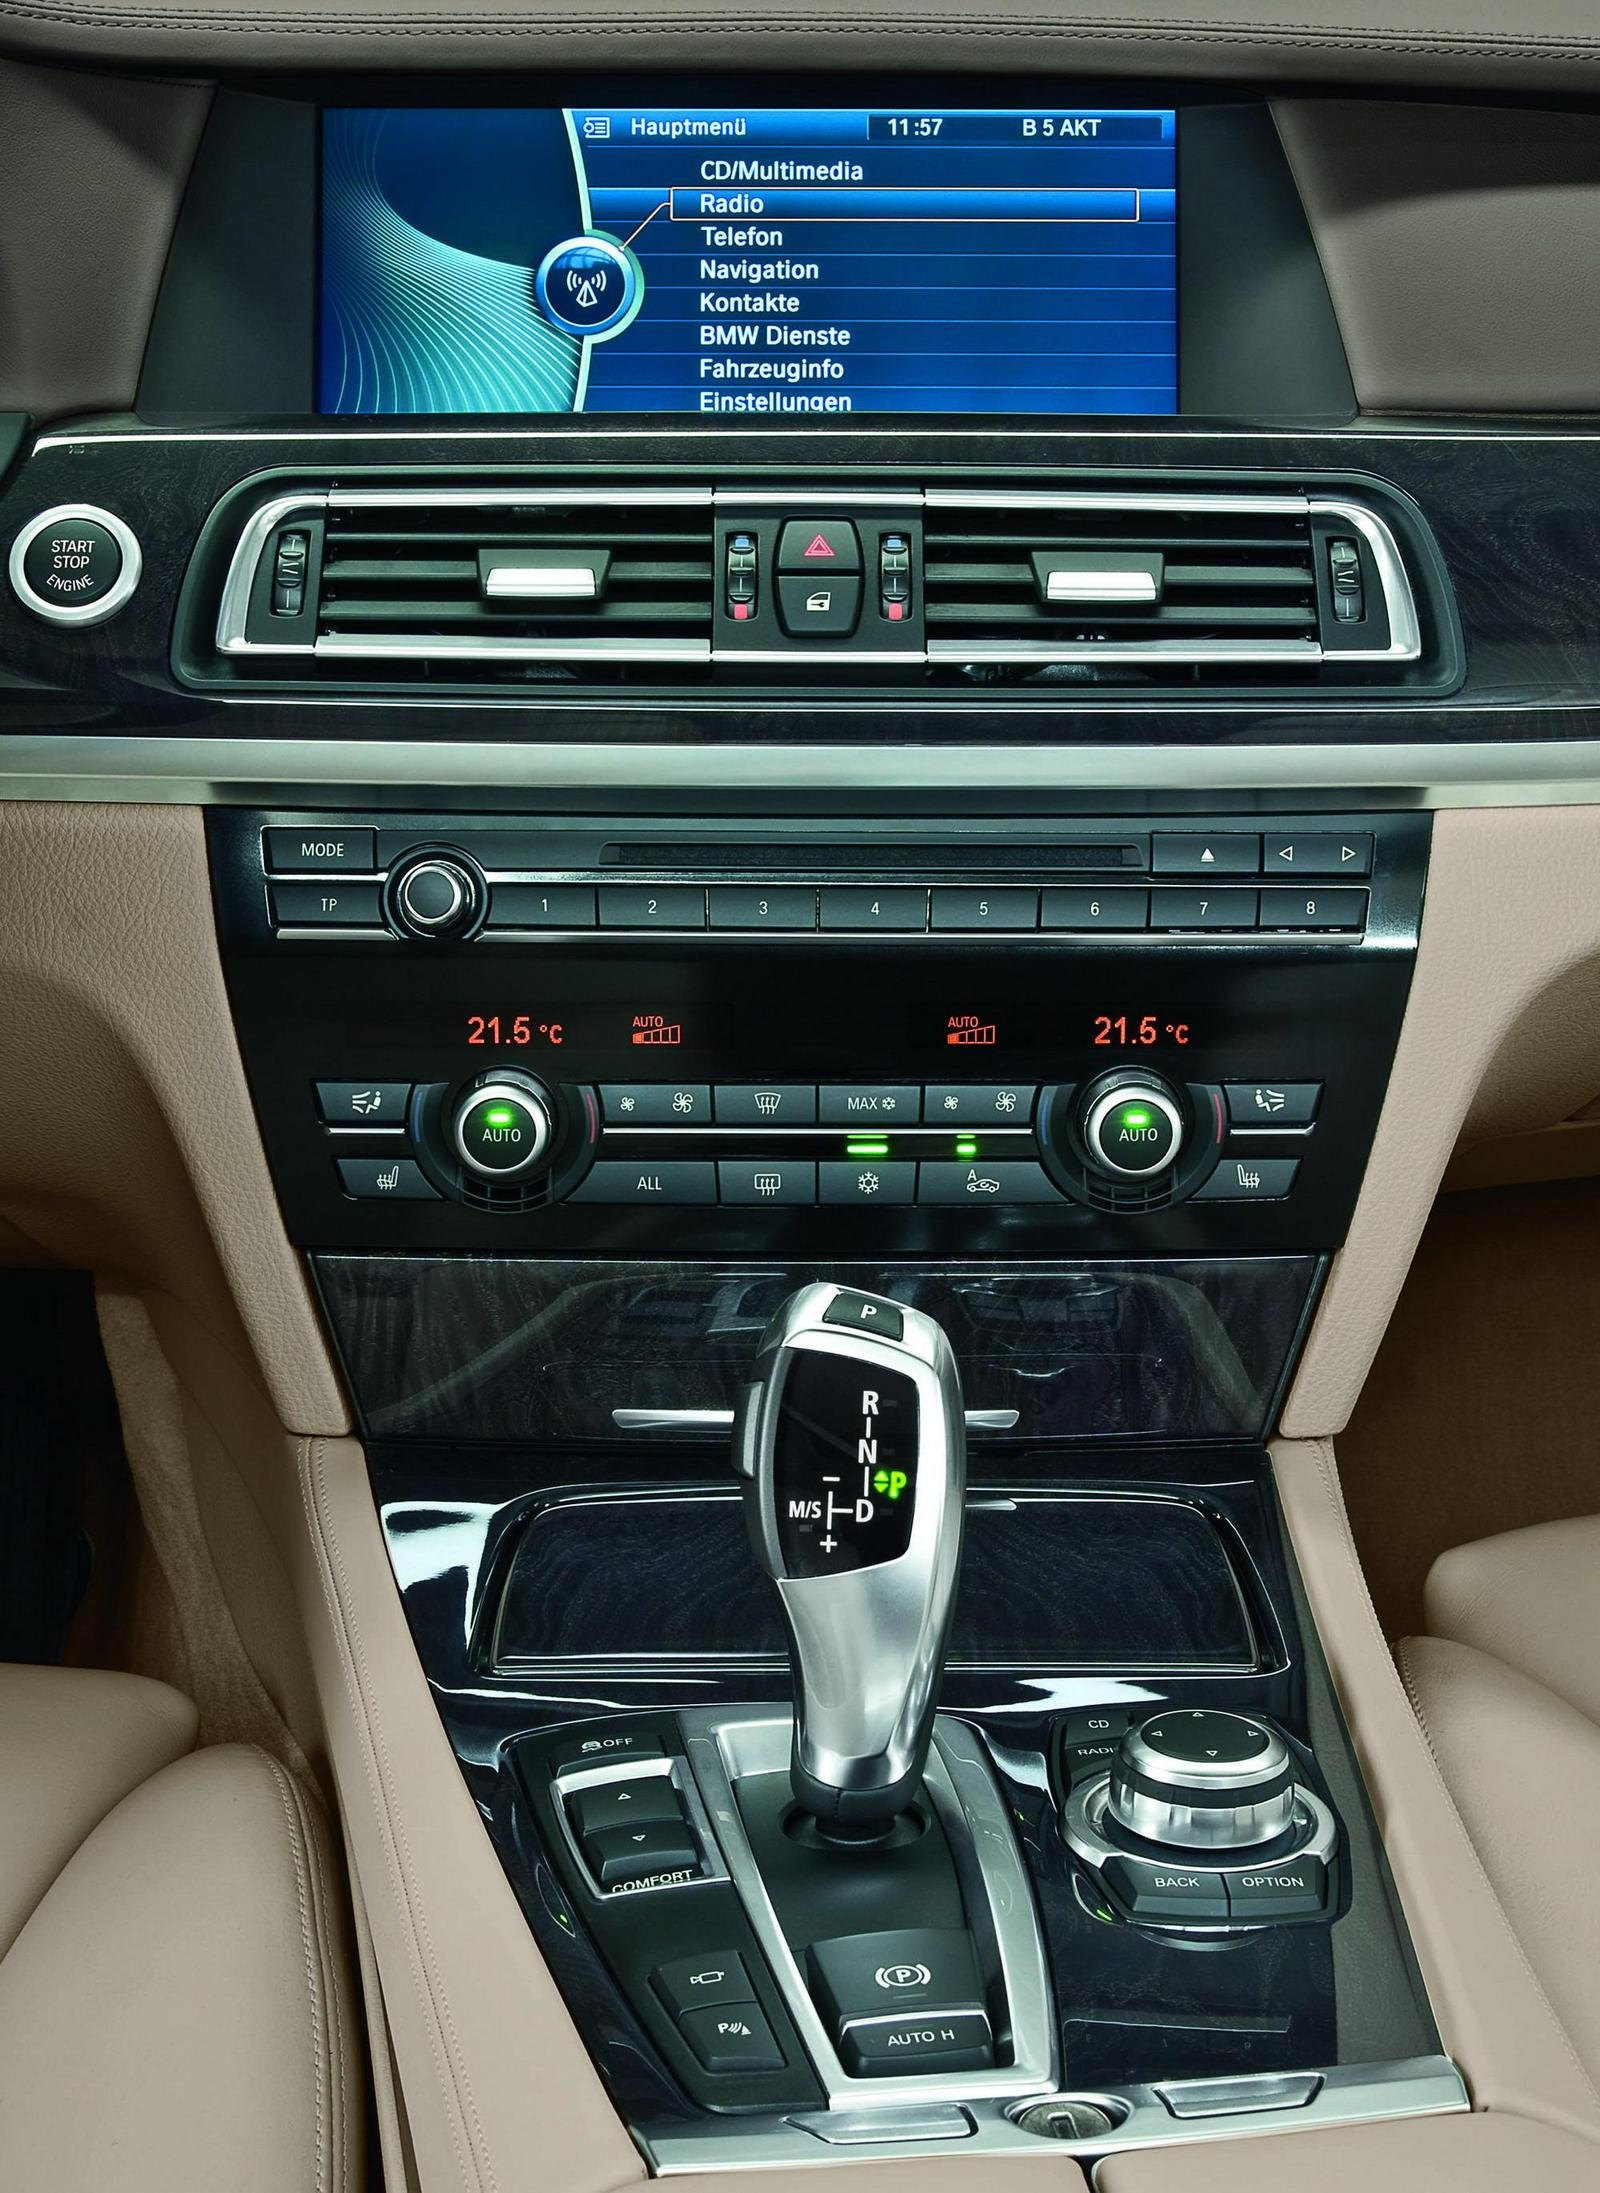 gallery: 2009 BMW 7-Series